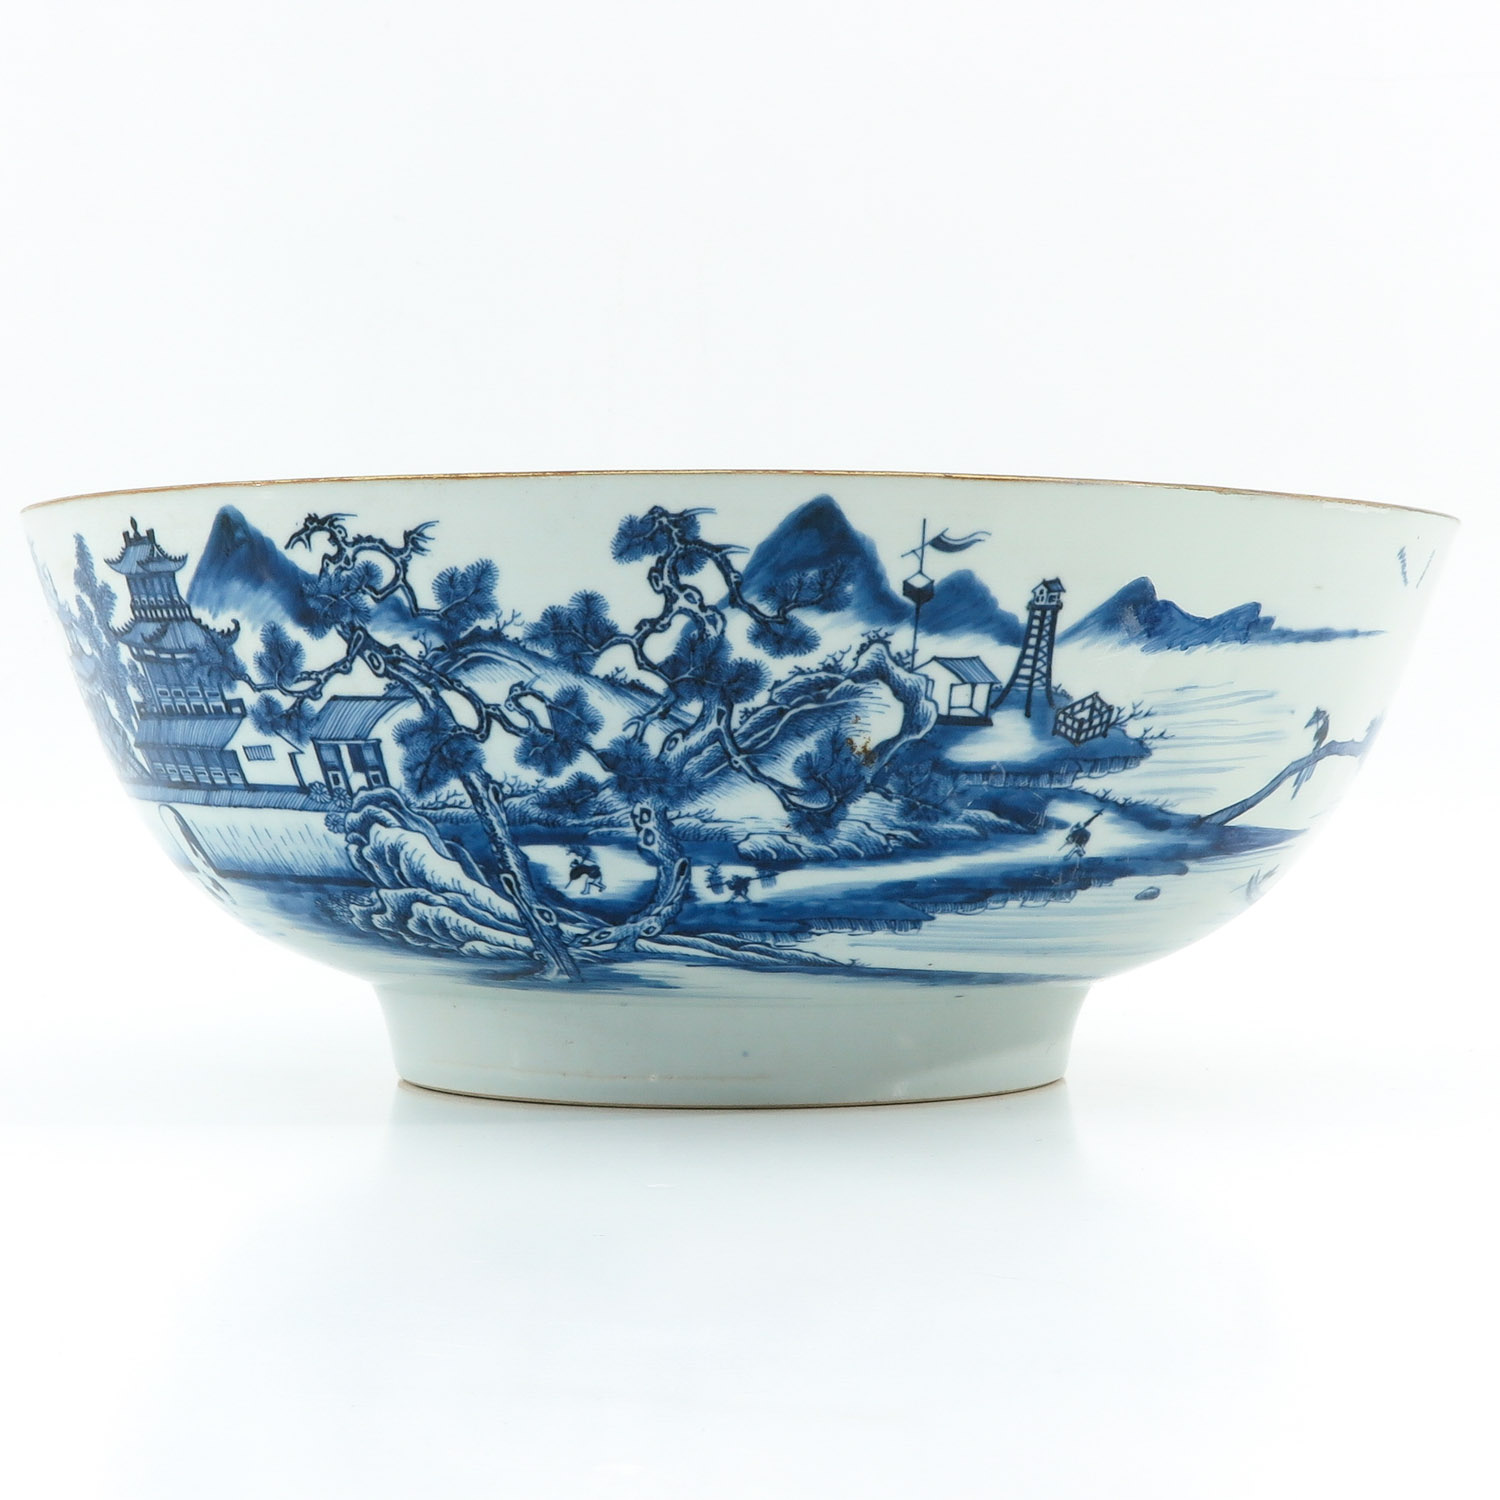 A Large Blue and White Bowl - Image 3 of 9